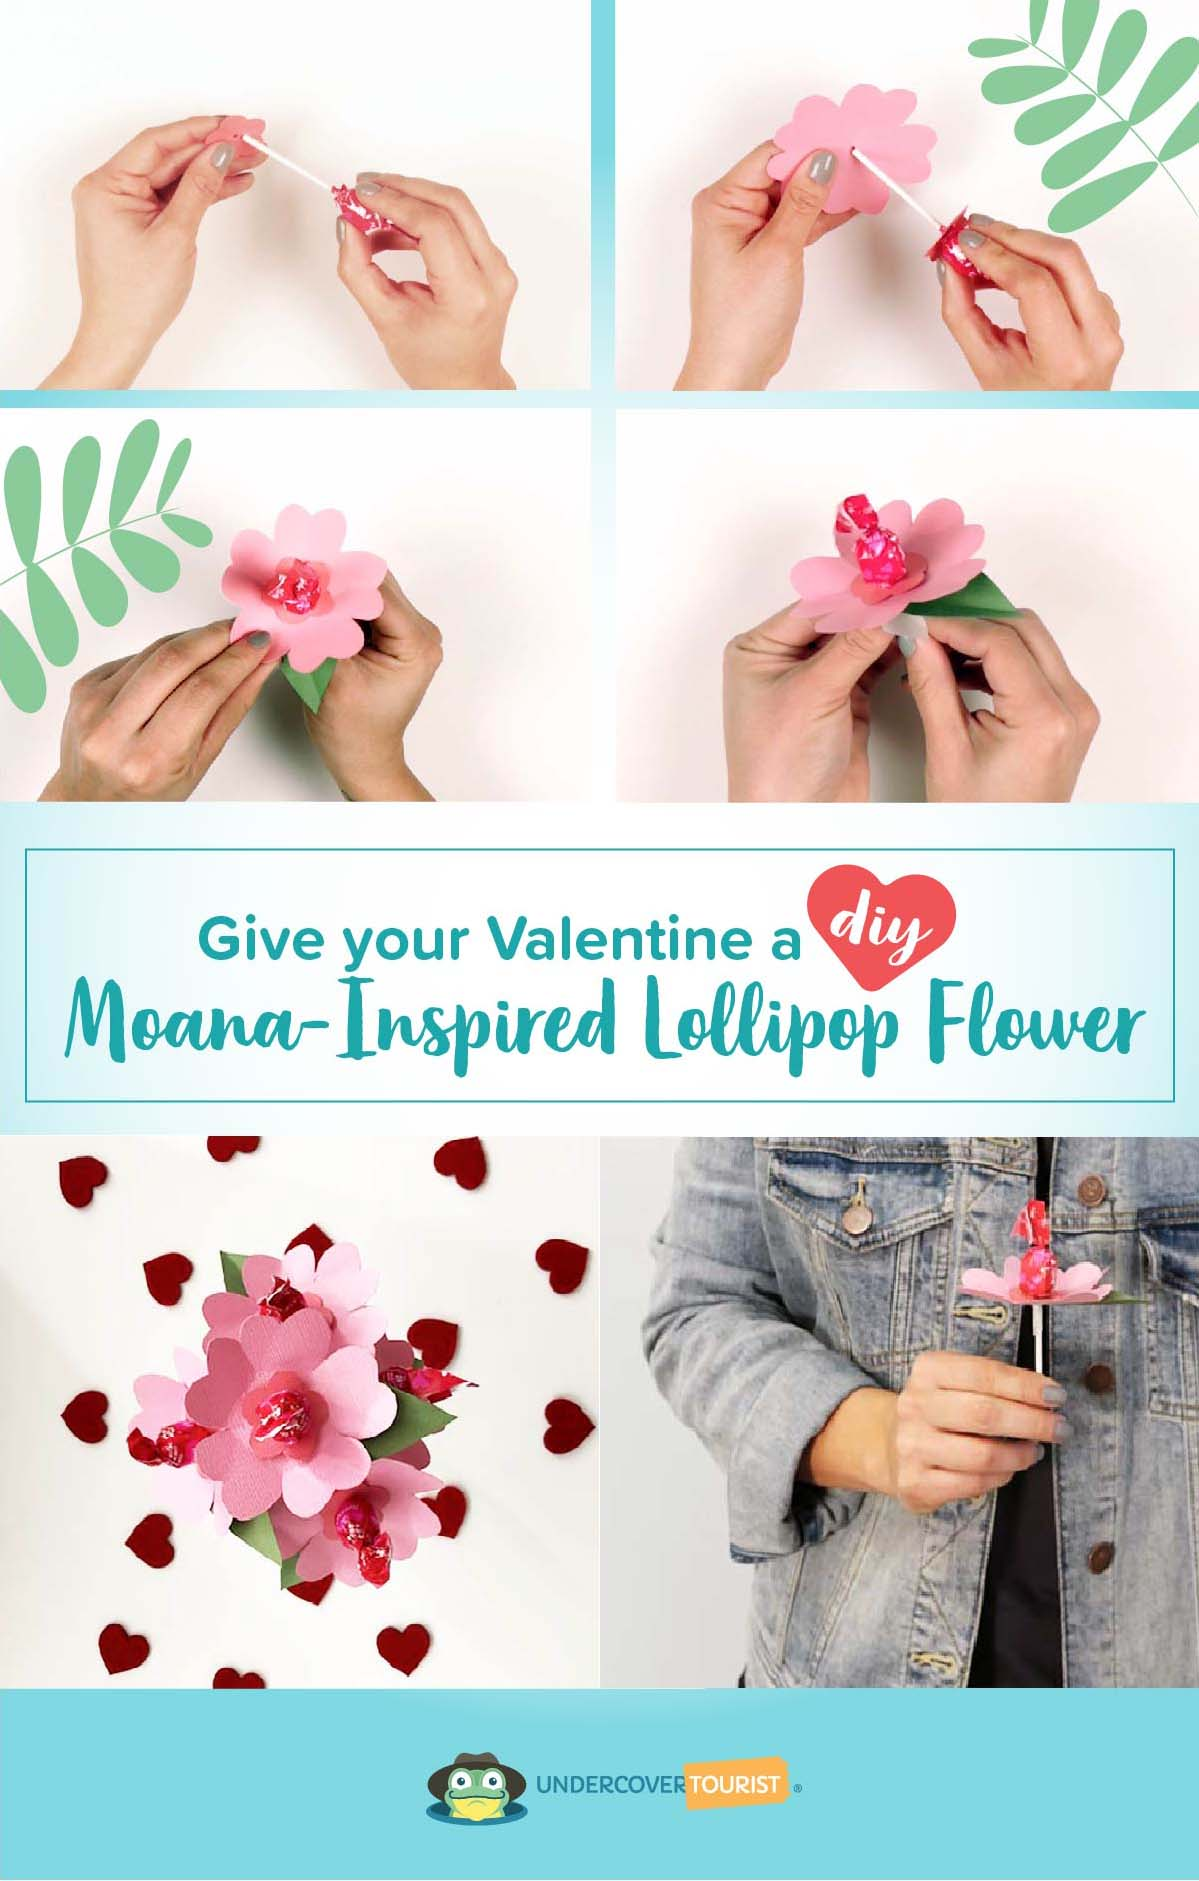 DIY Moana Lollipop Flower